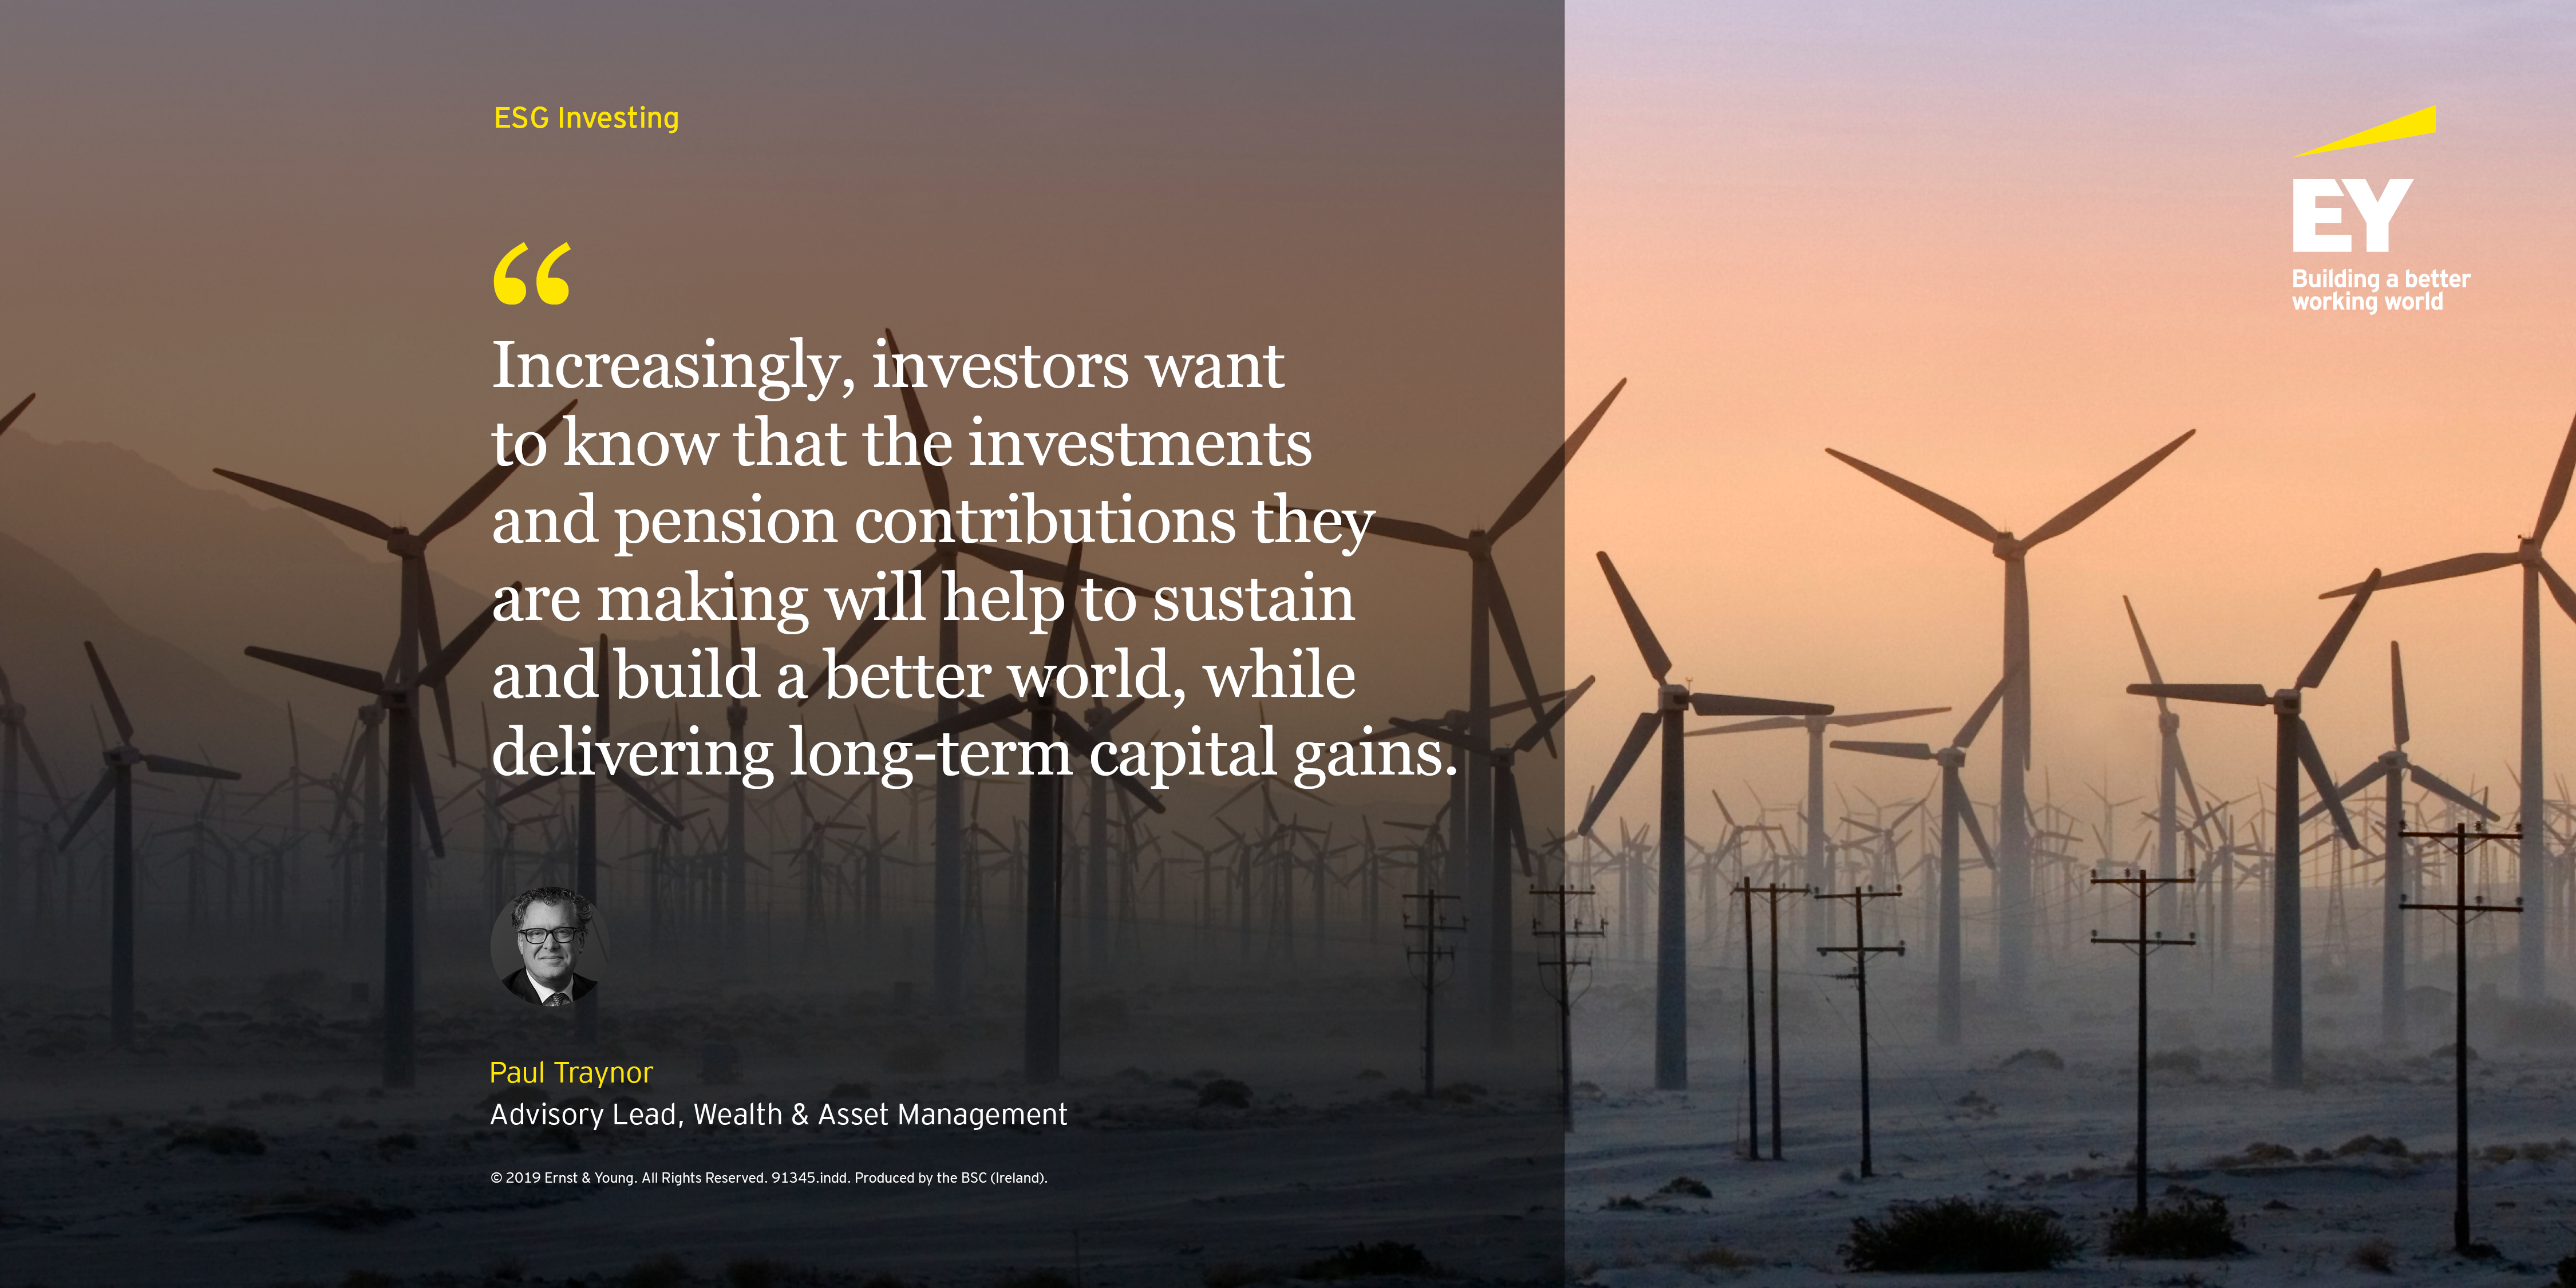 ESG | EY Financial Services Ireland Thought Gallery